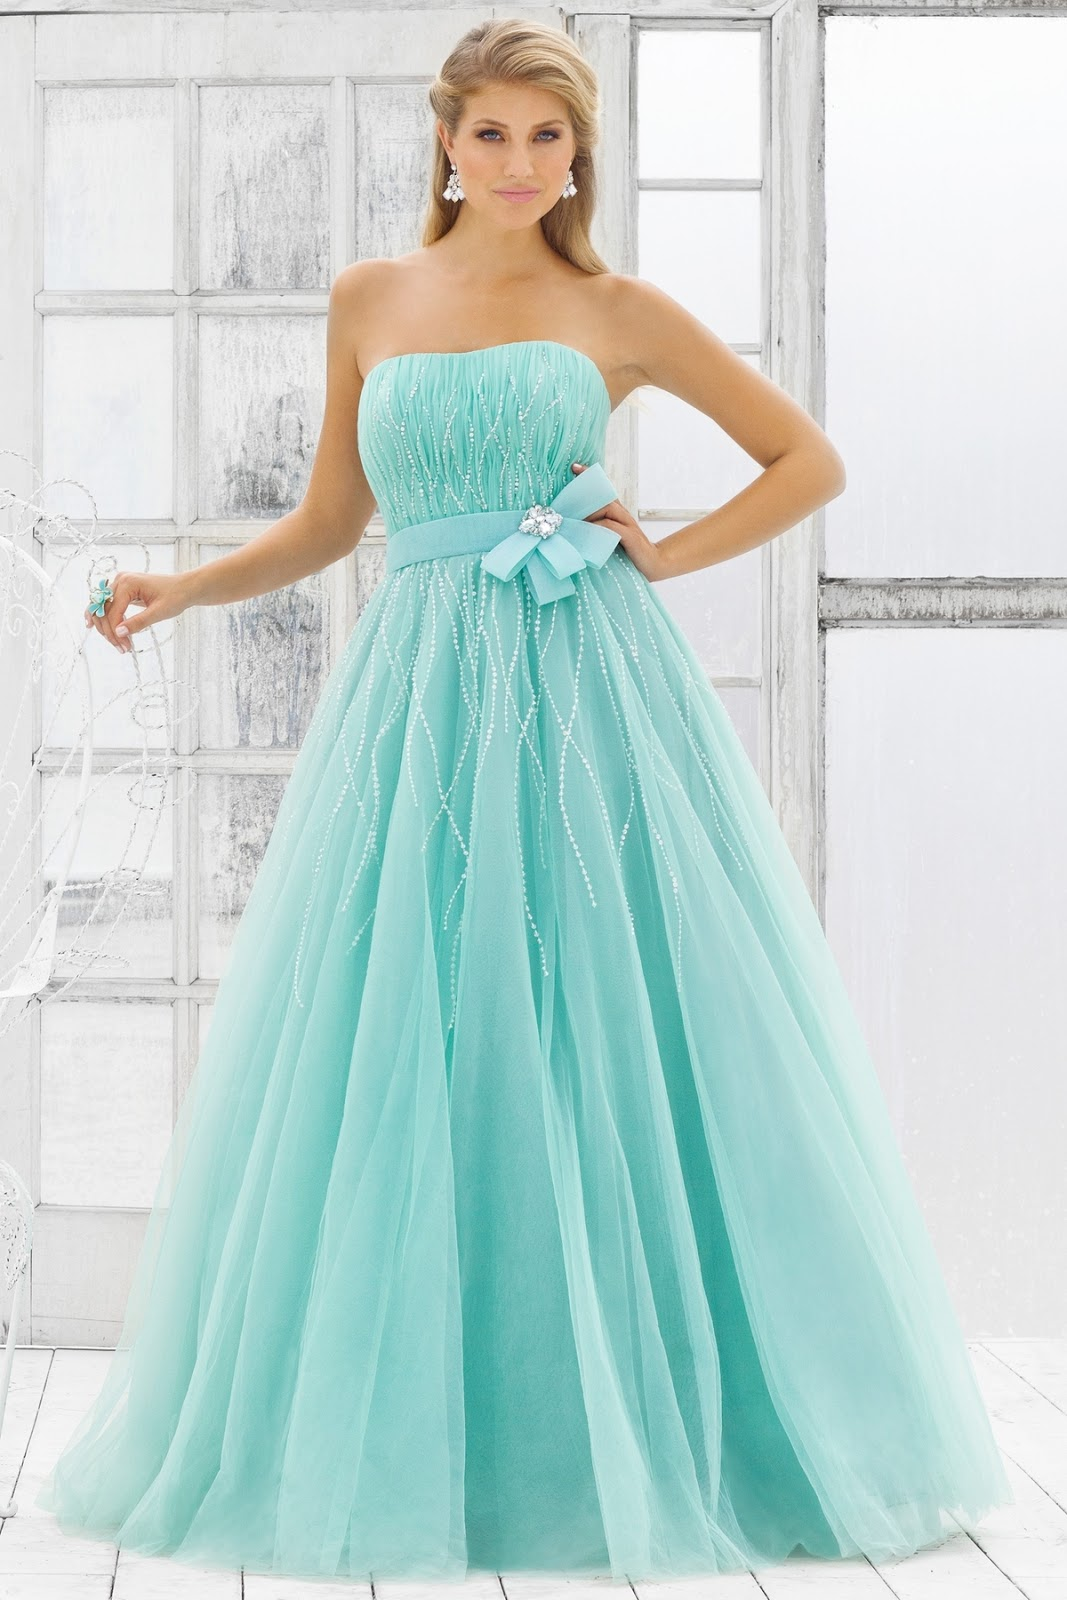 Evening Dresses: Strapless prom dress for a christmas party ...